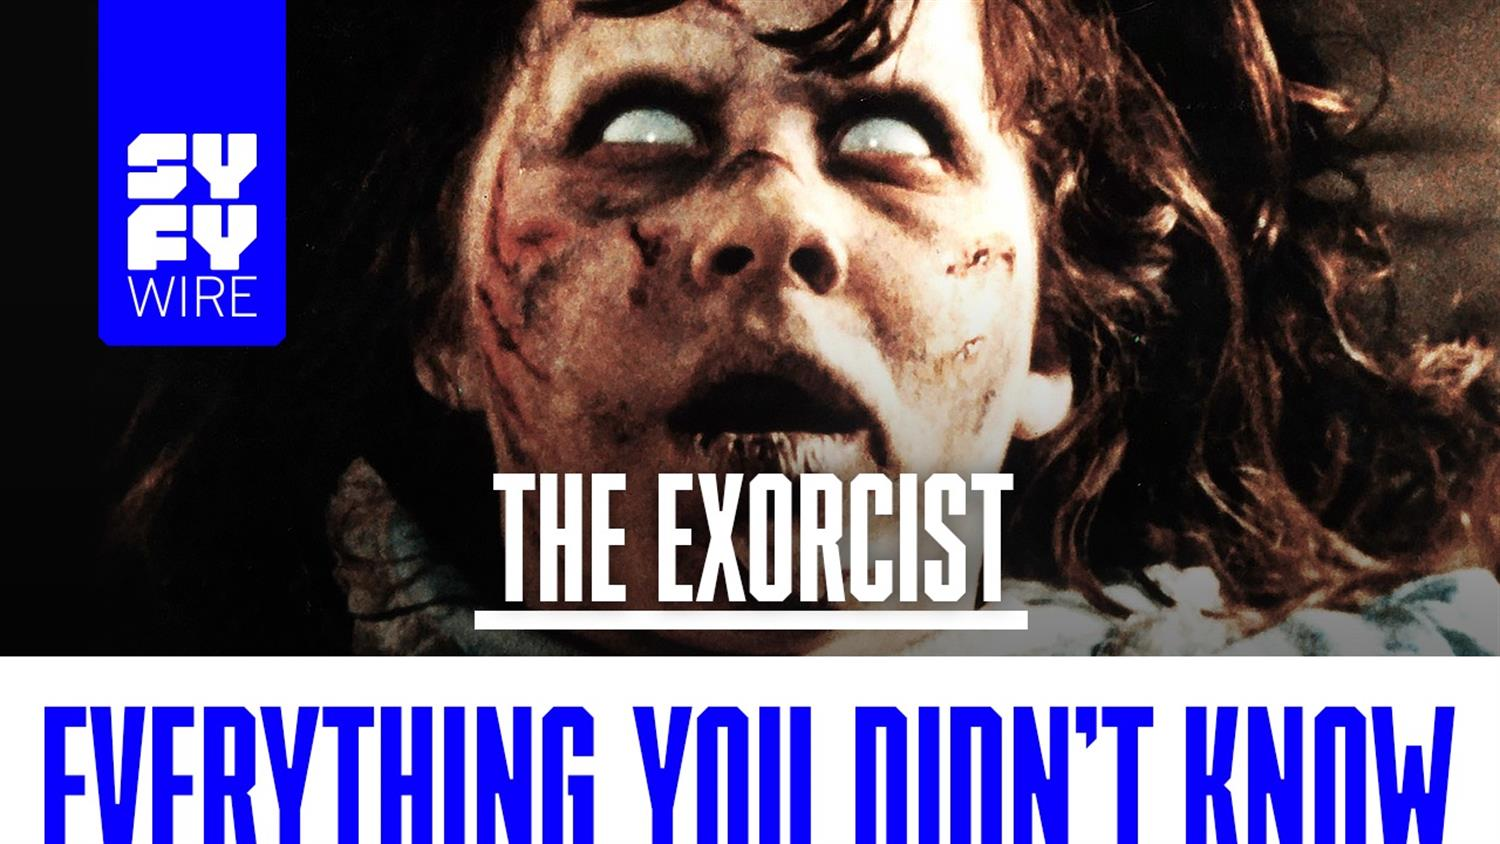 The Exorcist: Everything You Didn't Know